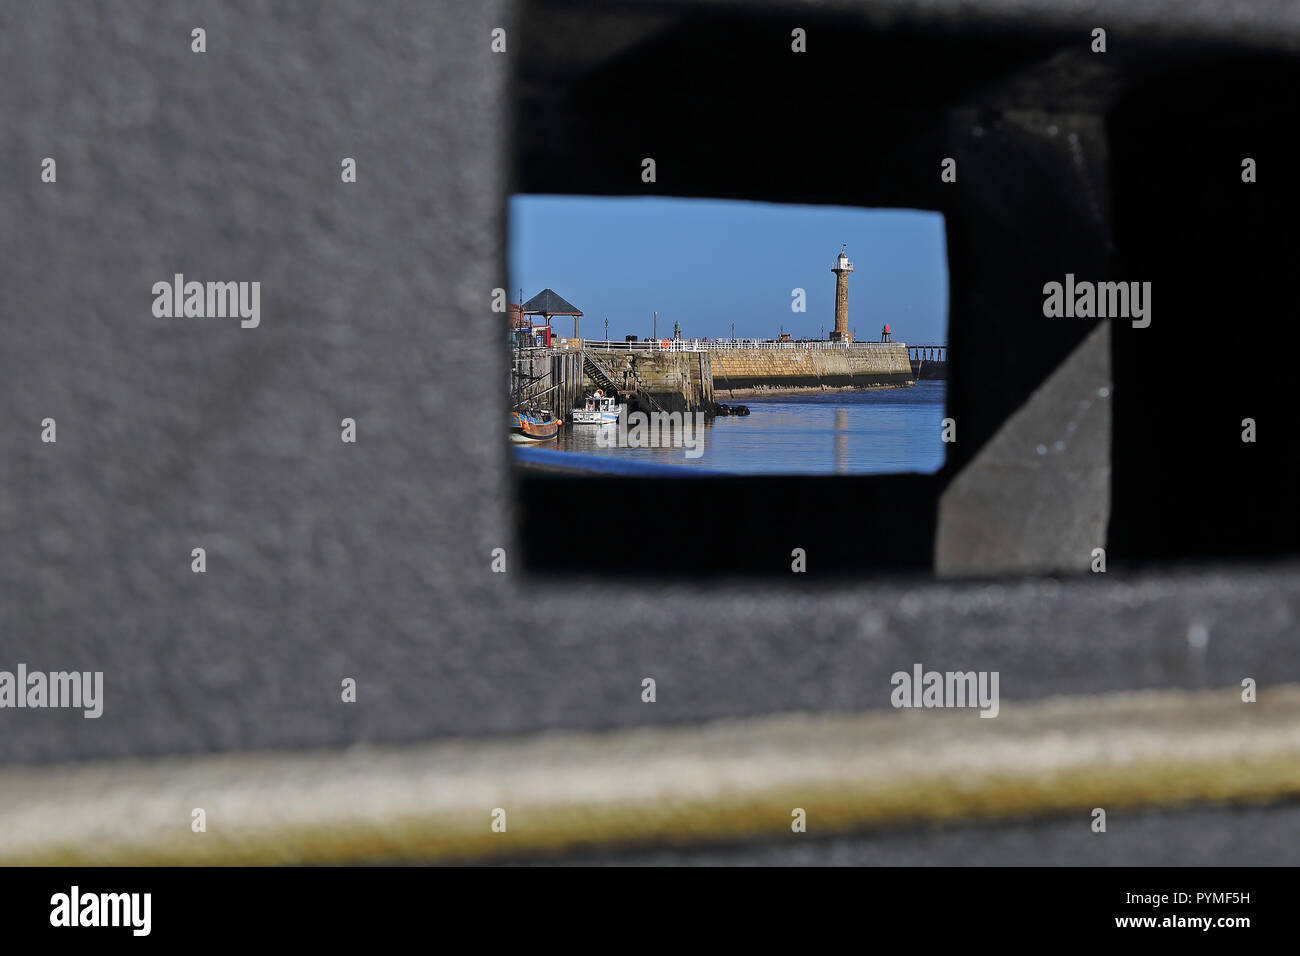 A view of Whitby, North Yorkshire, harbour through a litter bin on a bright autumn, day. - Stock Image